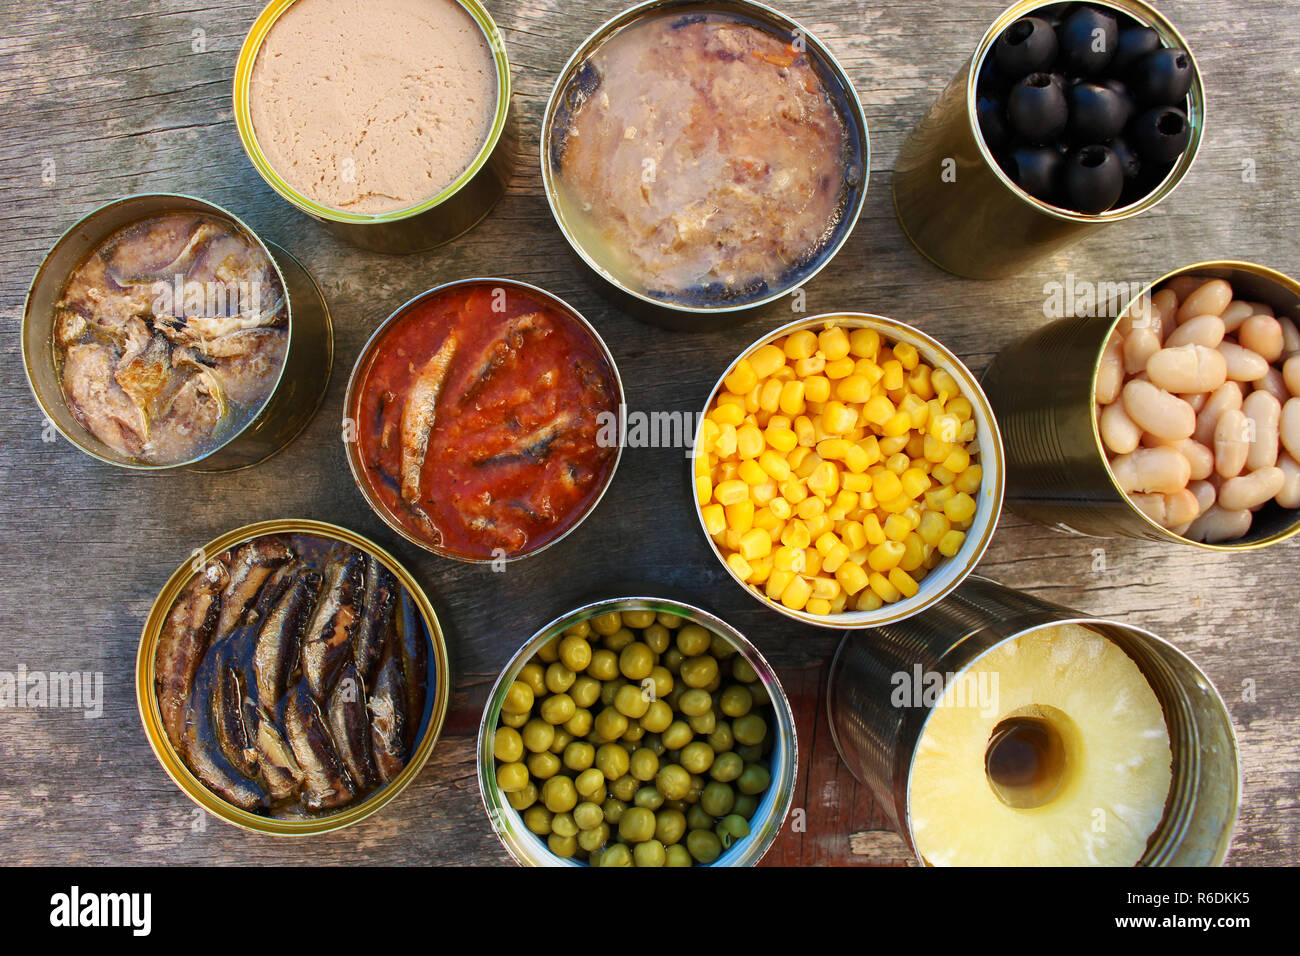 Different open canned food on old wooden background. Top view. Flat lay. - Stock Image